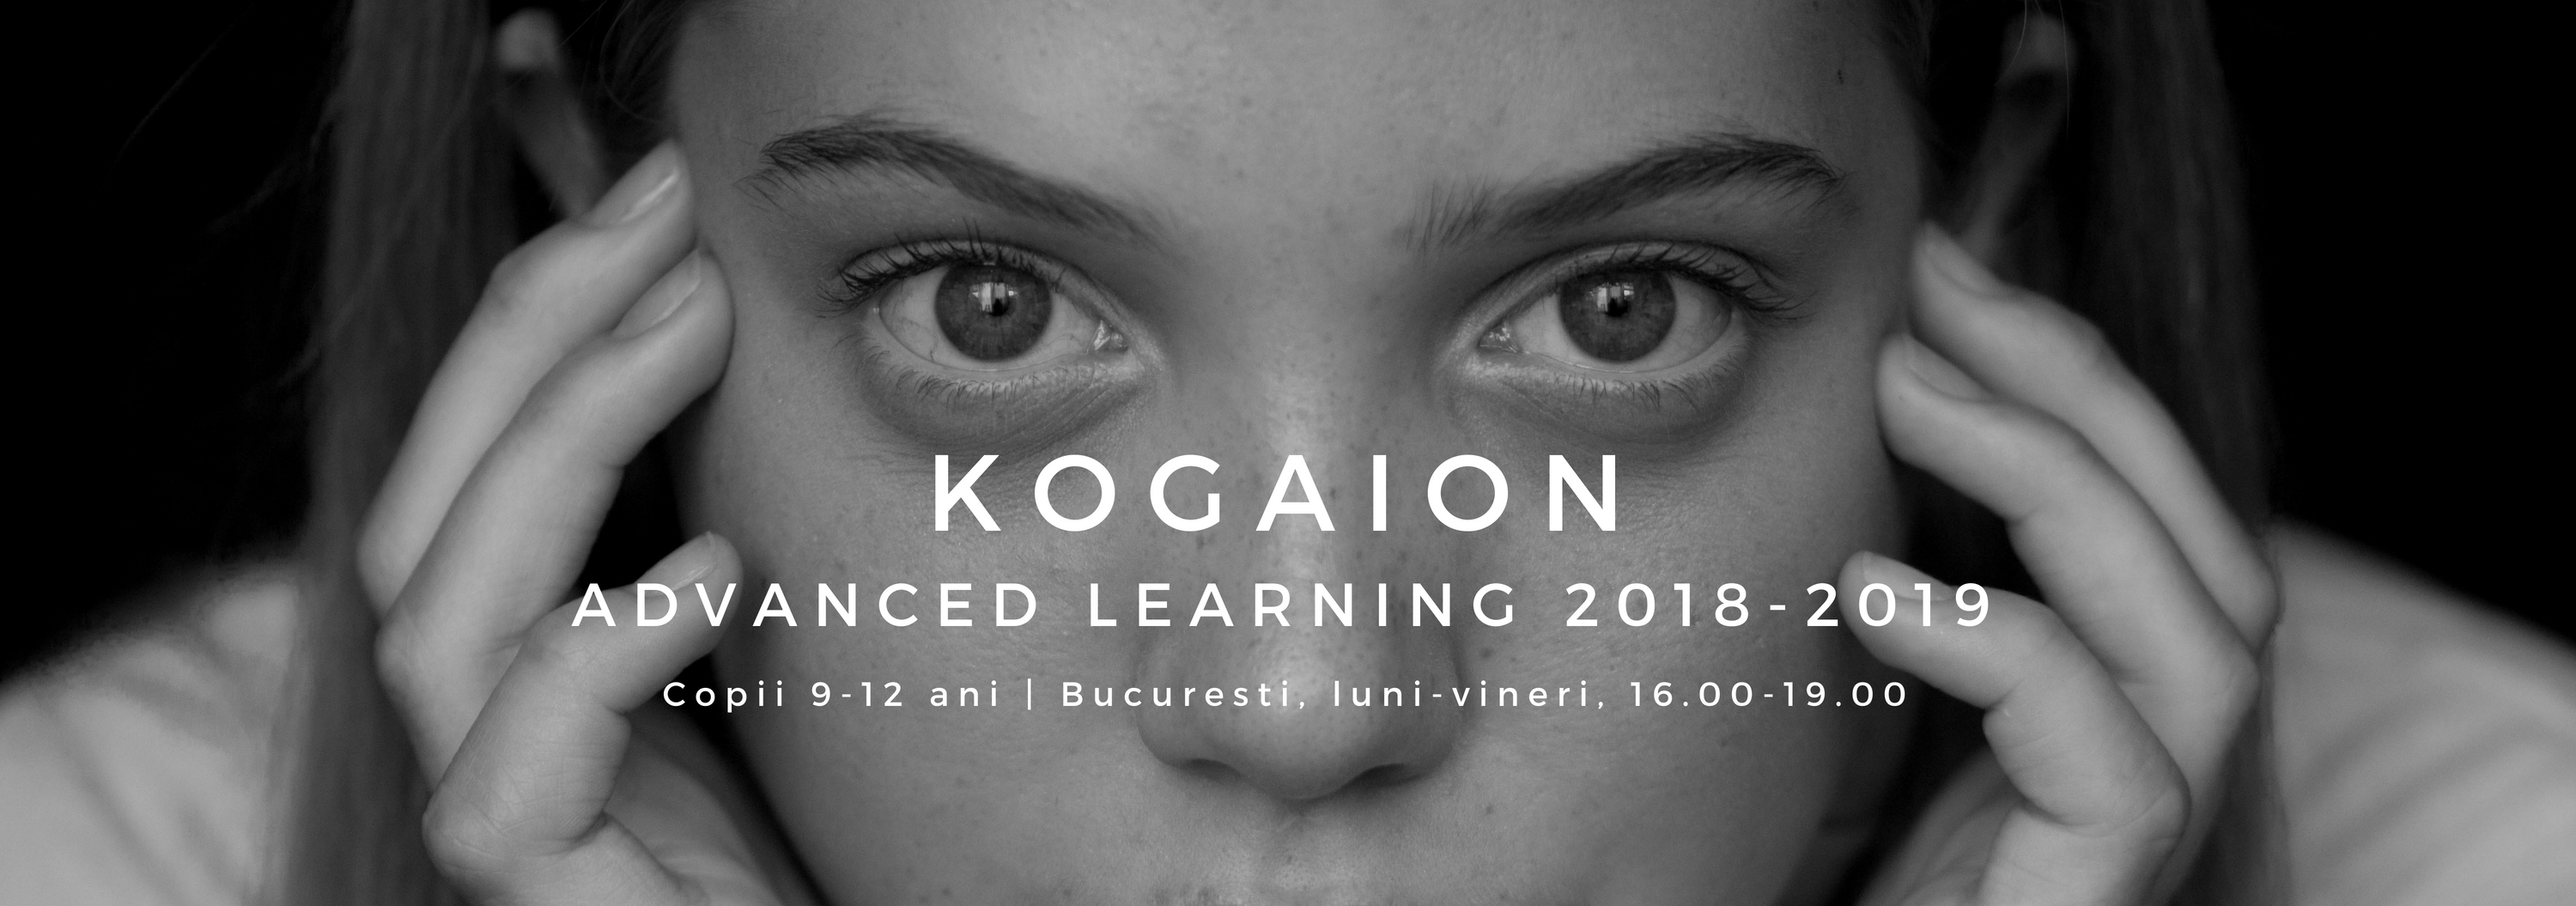 Kogaion Advanced Learning